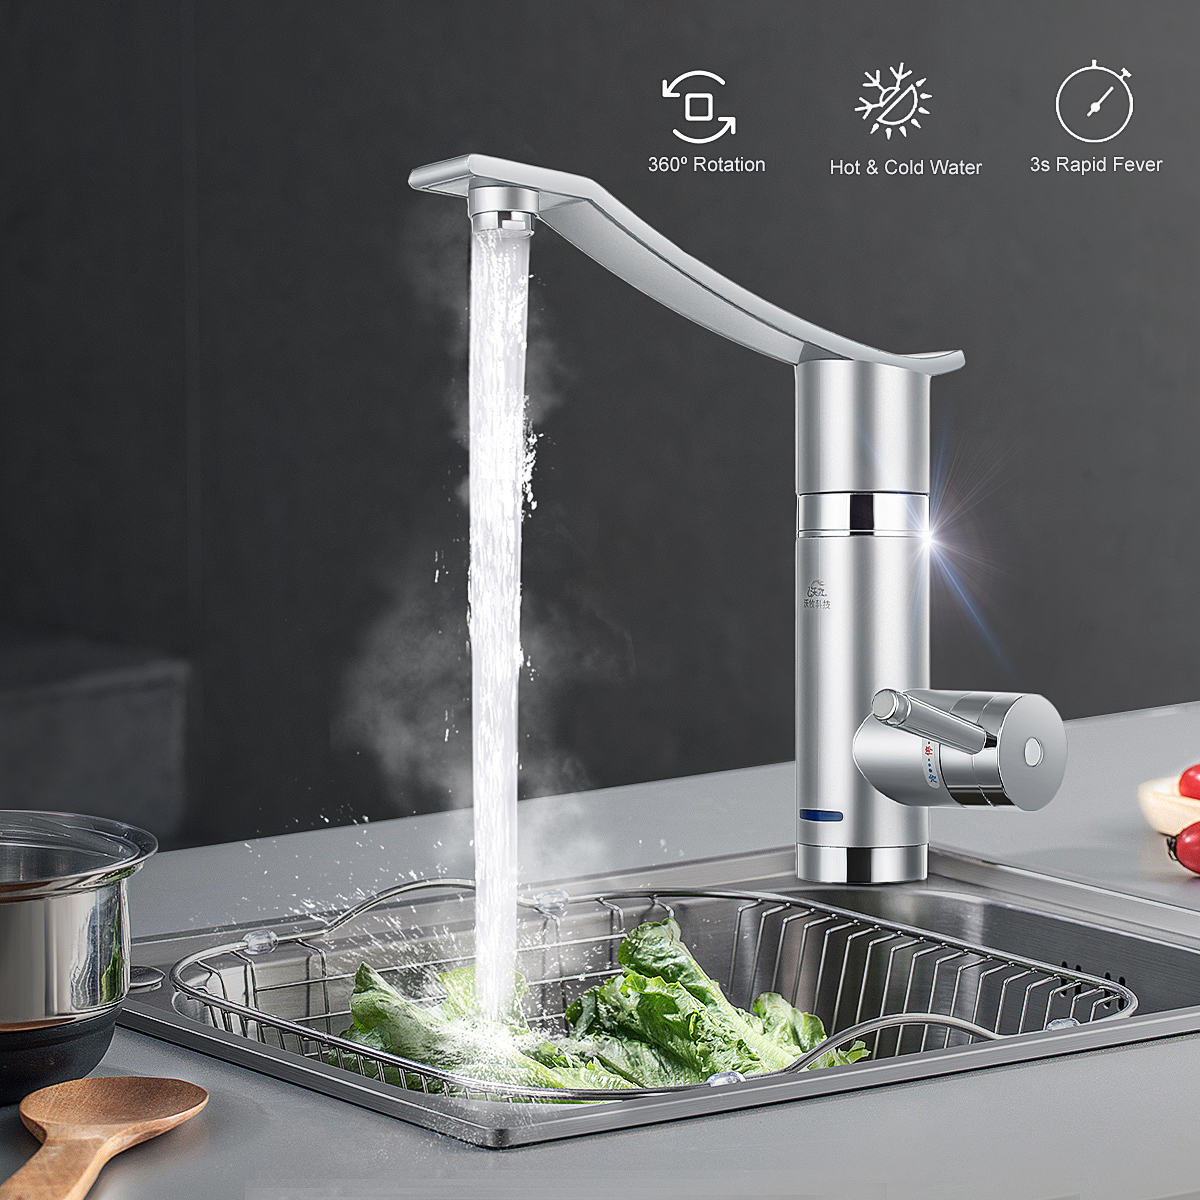 3000W Instant Electric Faucet Hot Water Electric Water Heaters Under Inflow/Side Water Without Leakage Protection